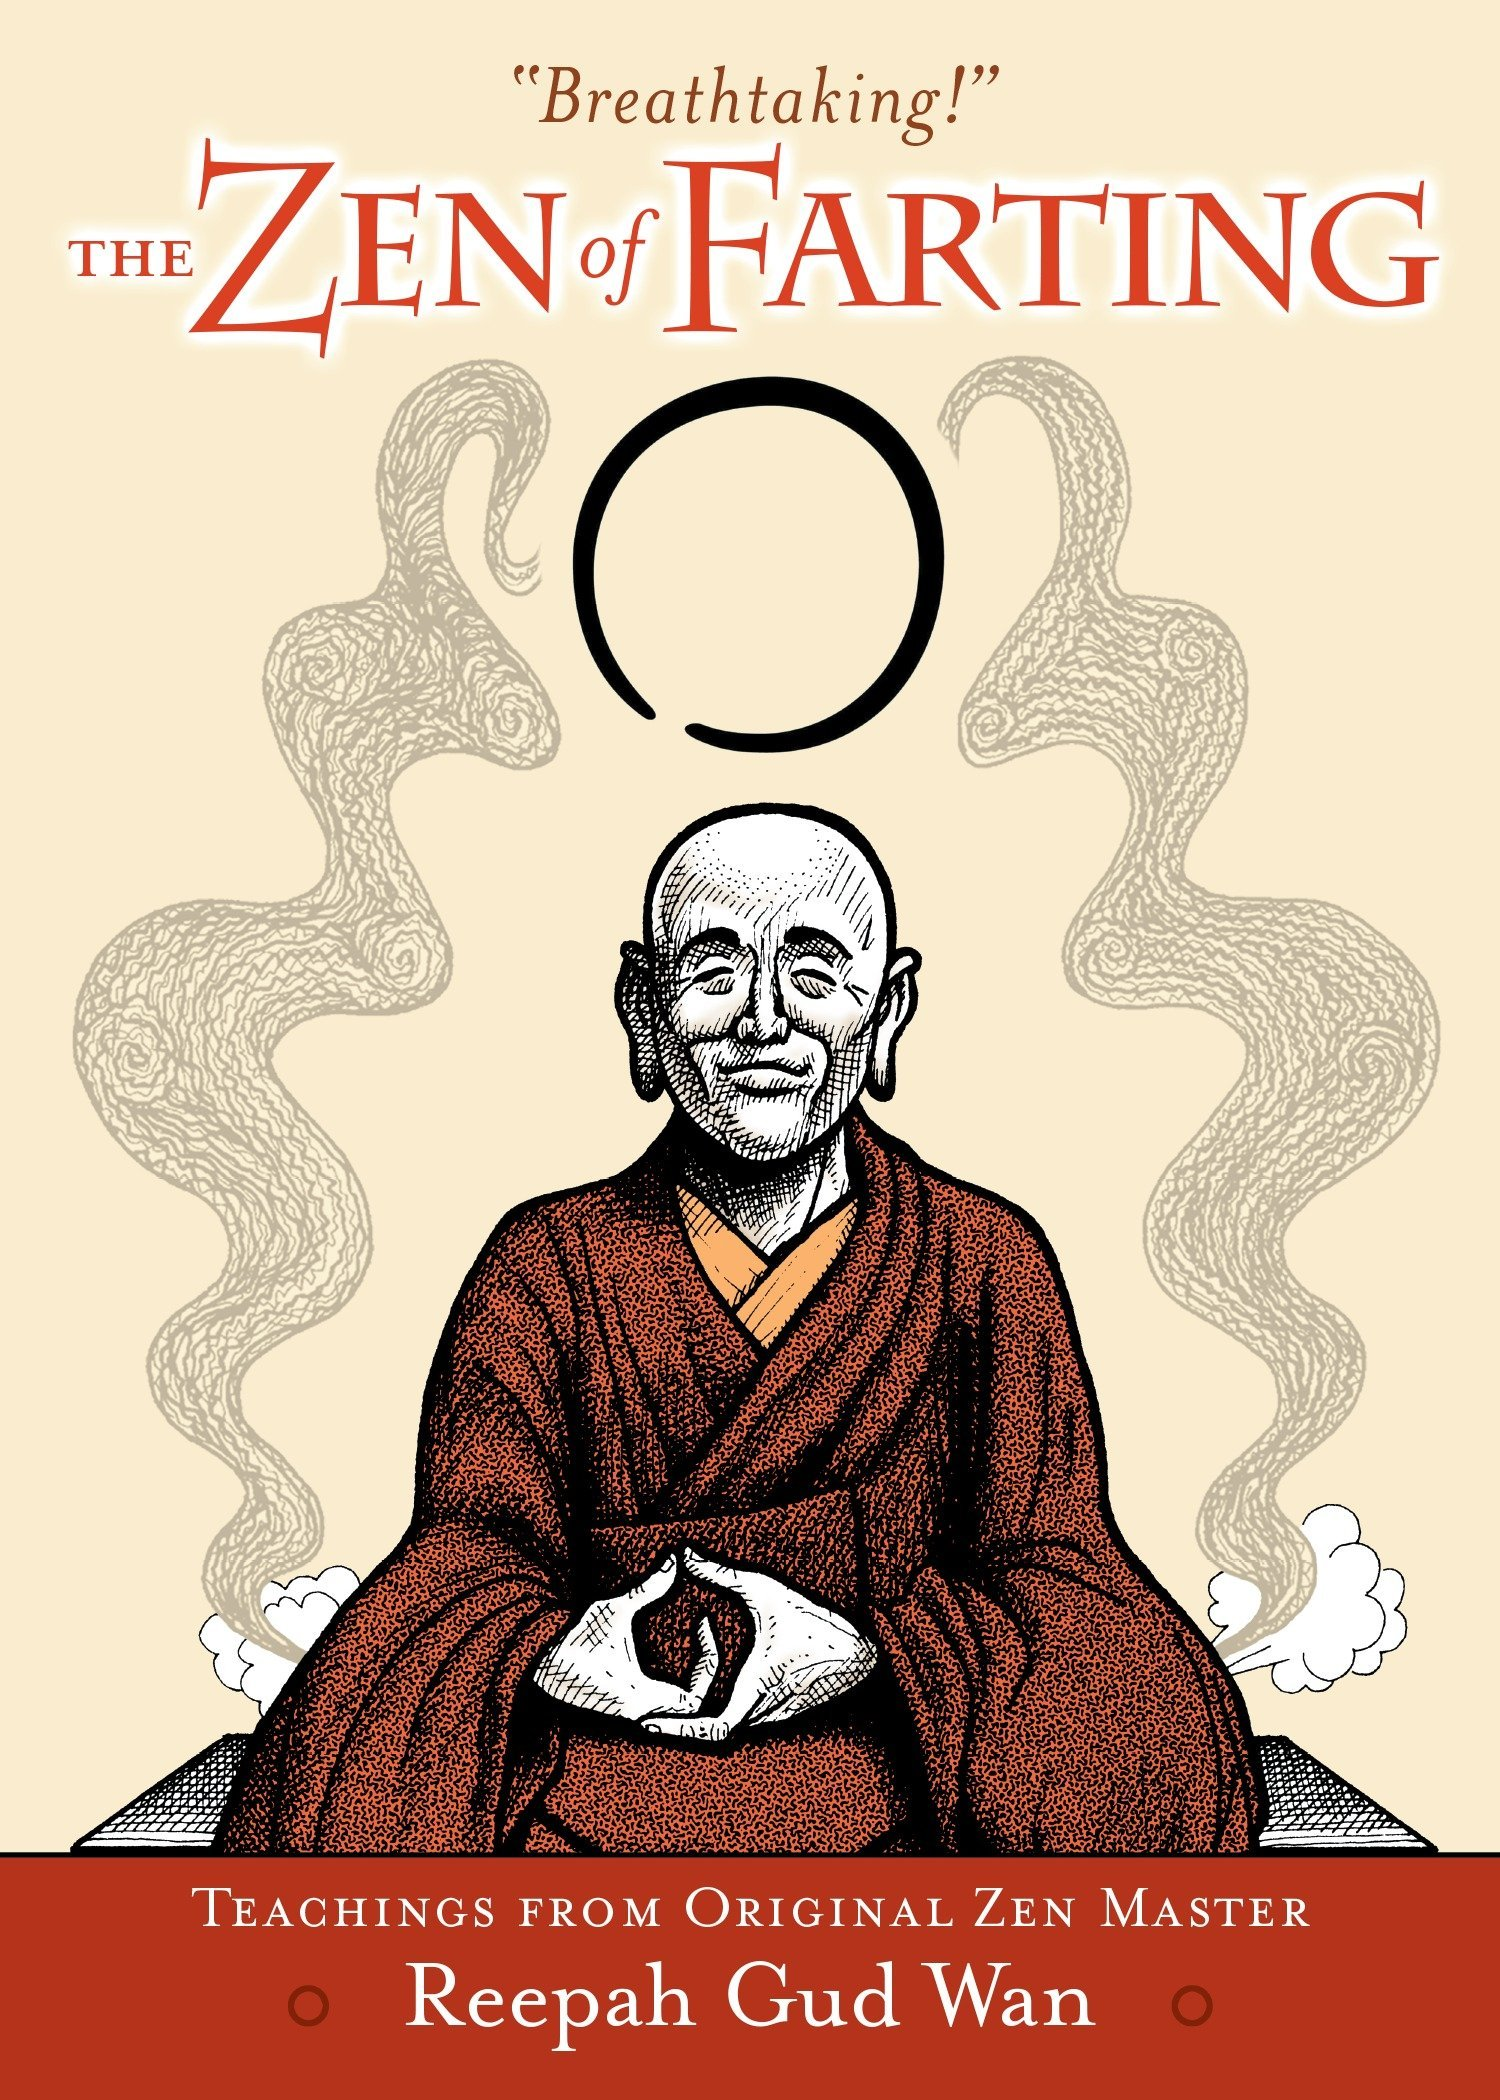 'The Zen of Farting' by Carl Japikse